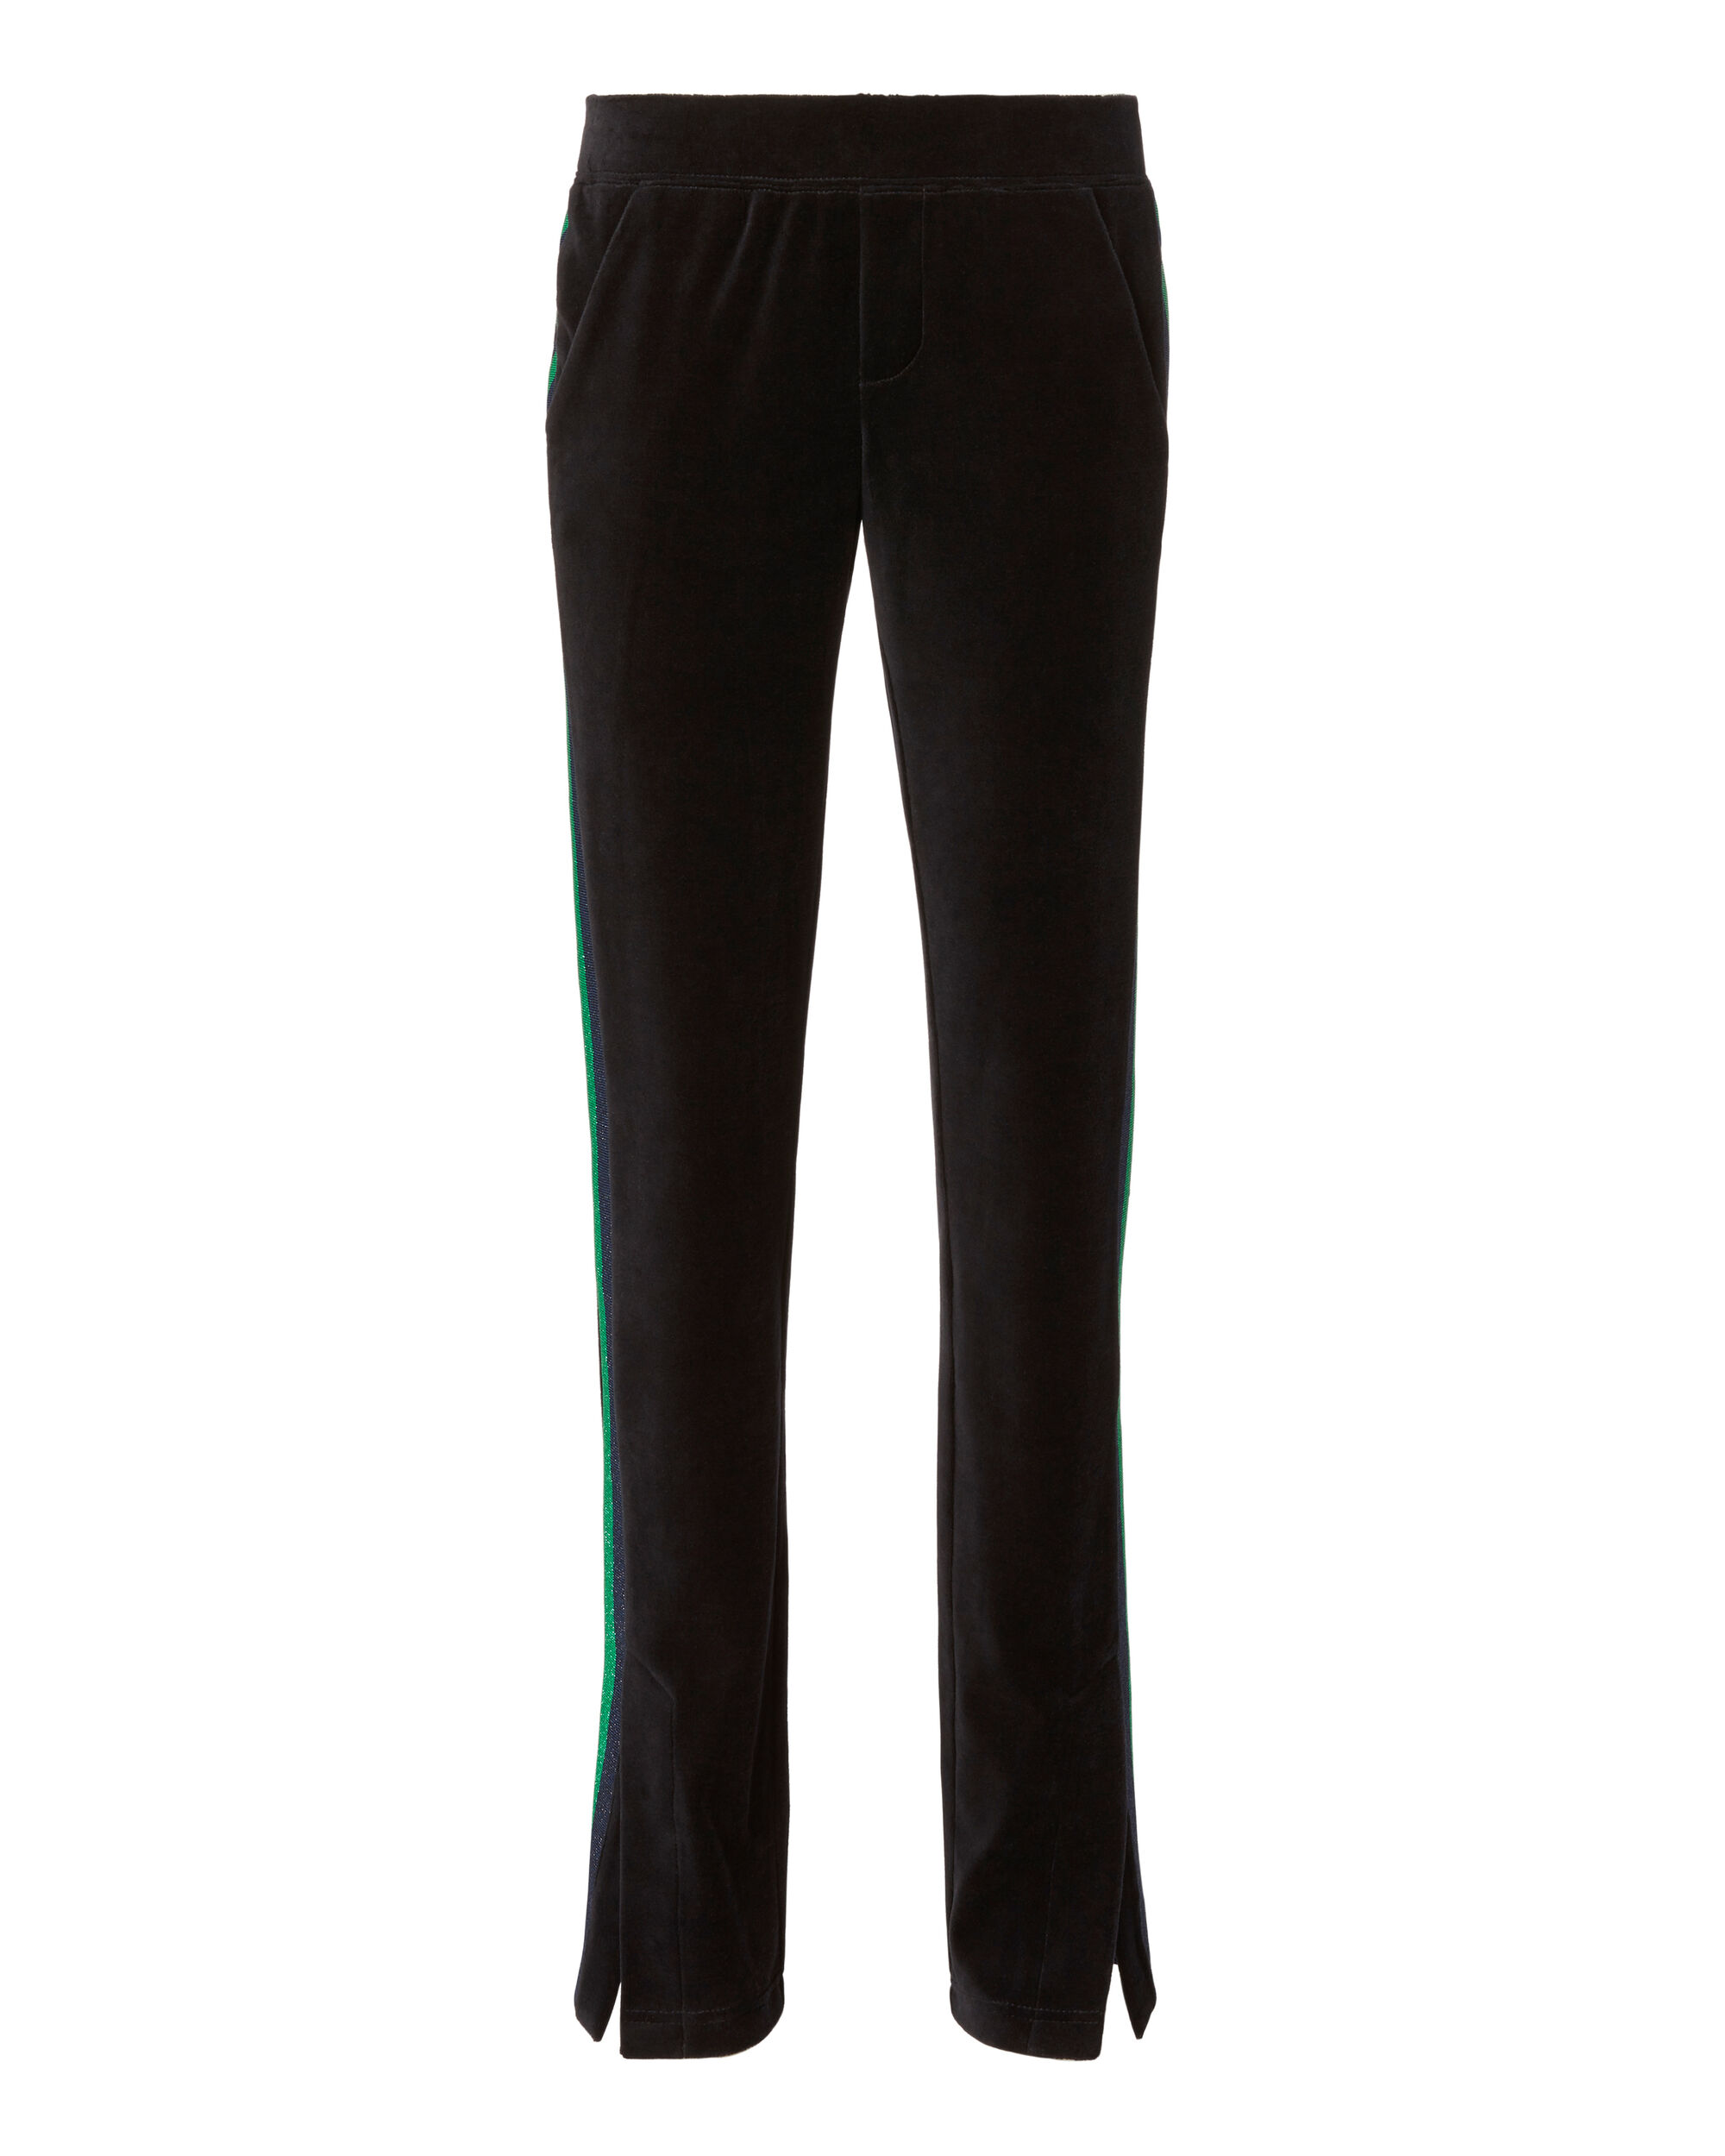 Striped Velvet Track Pants, BLACK, hi-res